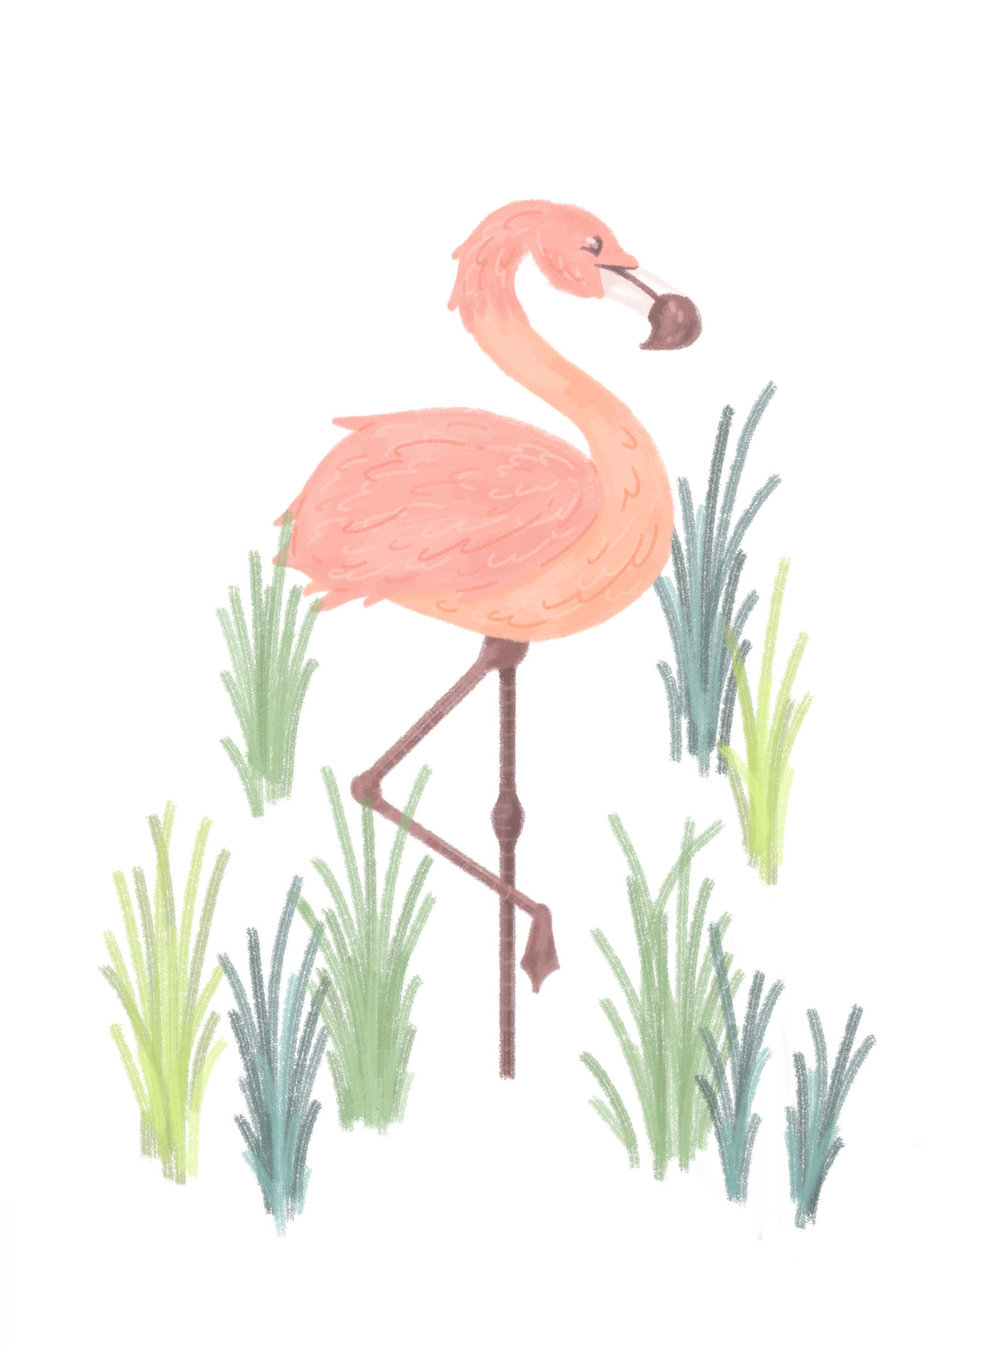 Flamingo illustration, standing in reeds.